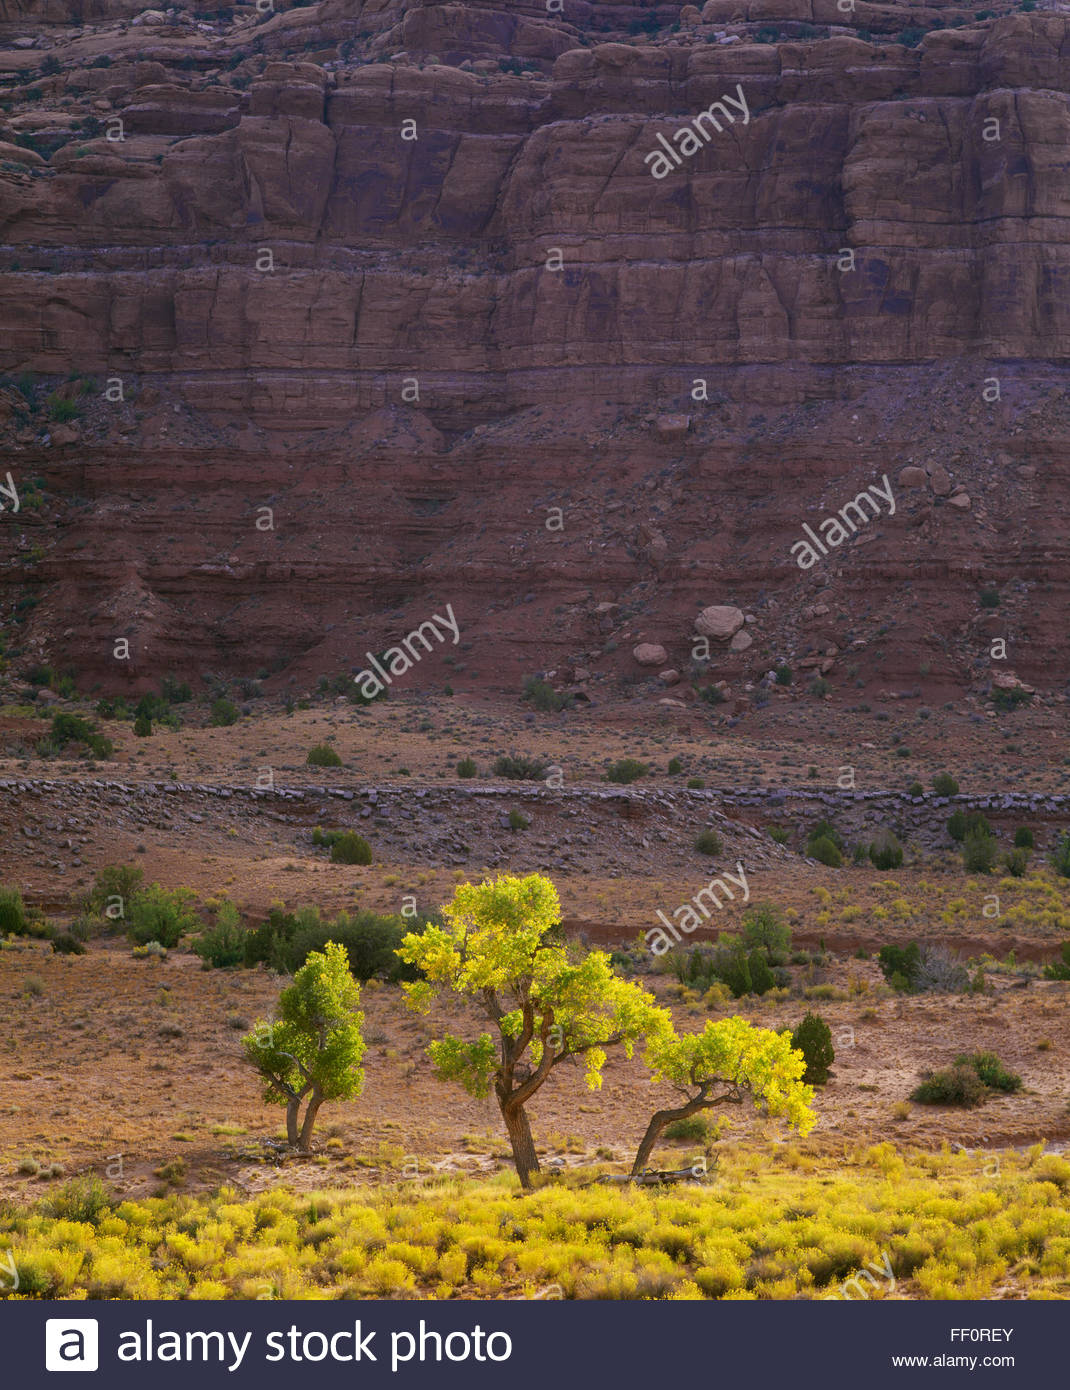 Cottonwood trees in the Valley of the Gods.  Bears Ears National Monument, Southeast Utah. - Stock Image